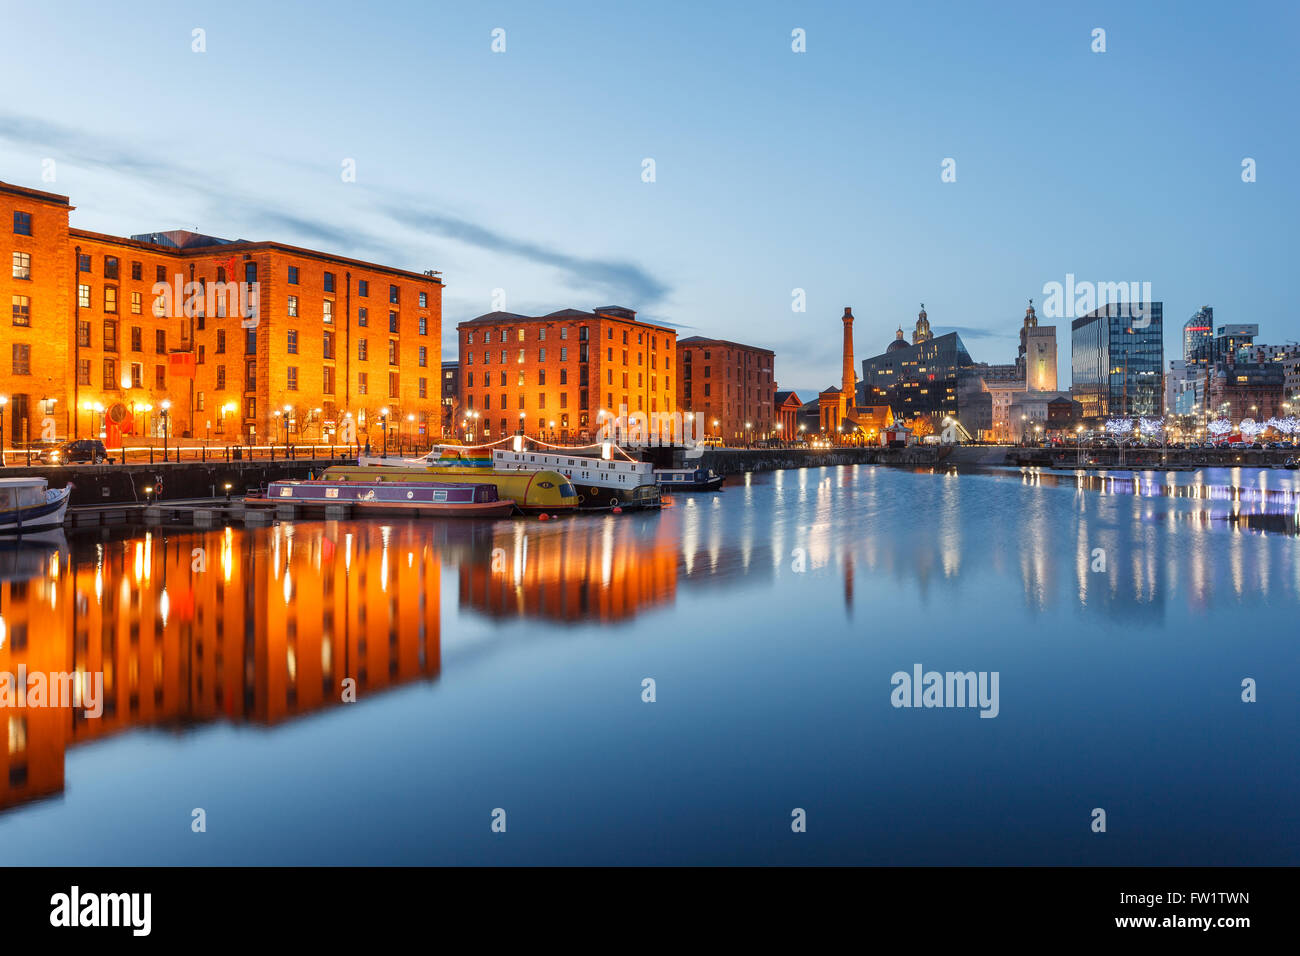 Reflections of old buildings at Albert Dock, Liverpool waterfront, UK. - Stock Image